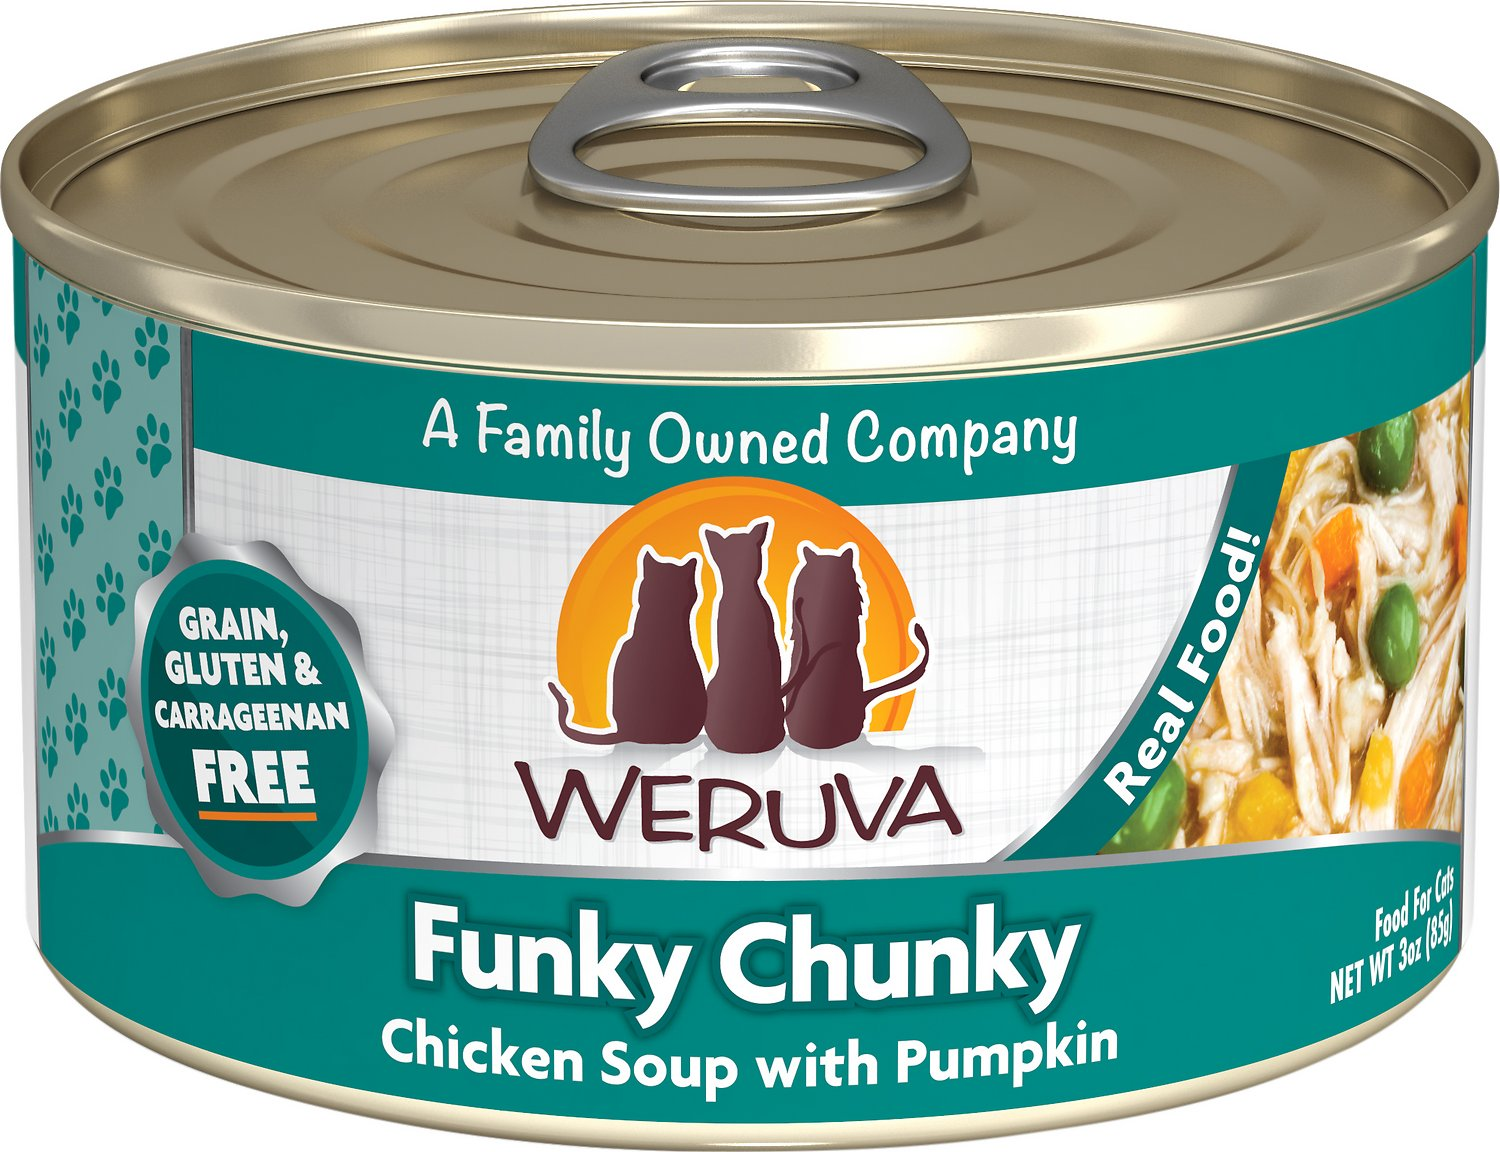 Weruva Cat Classic Funky Chunky Chicken Soup with Pumpkin Grain-Free Wet Cat Food, 3-oz